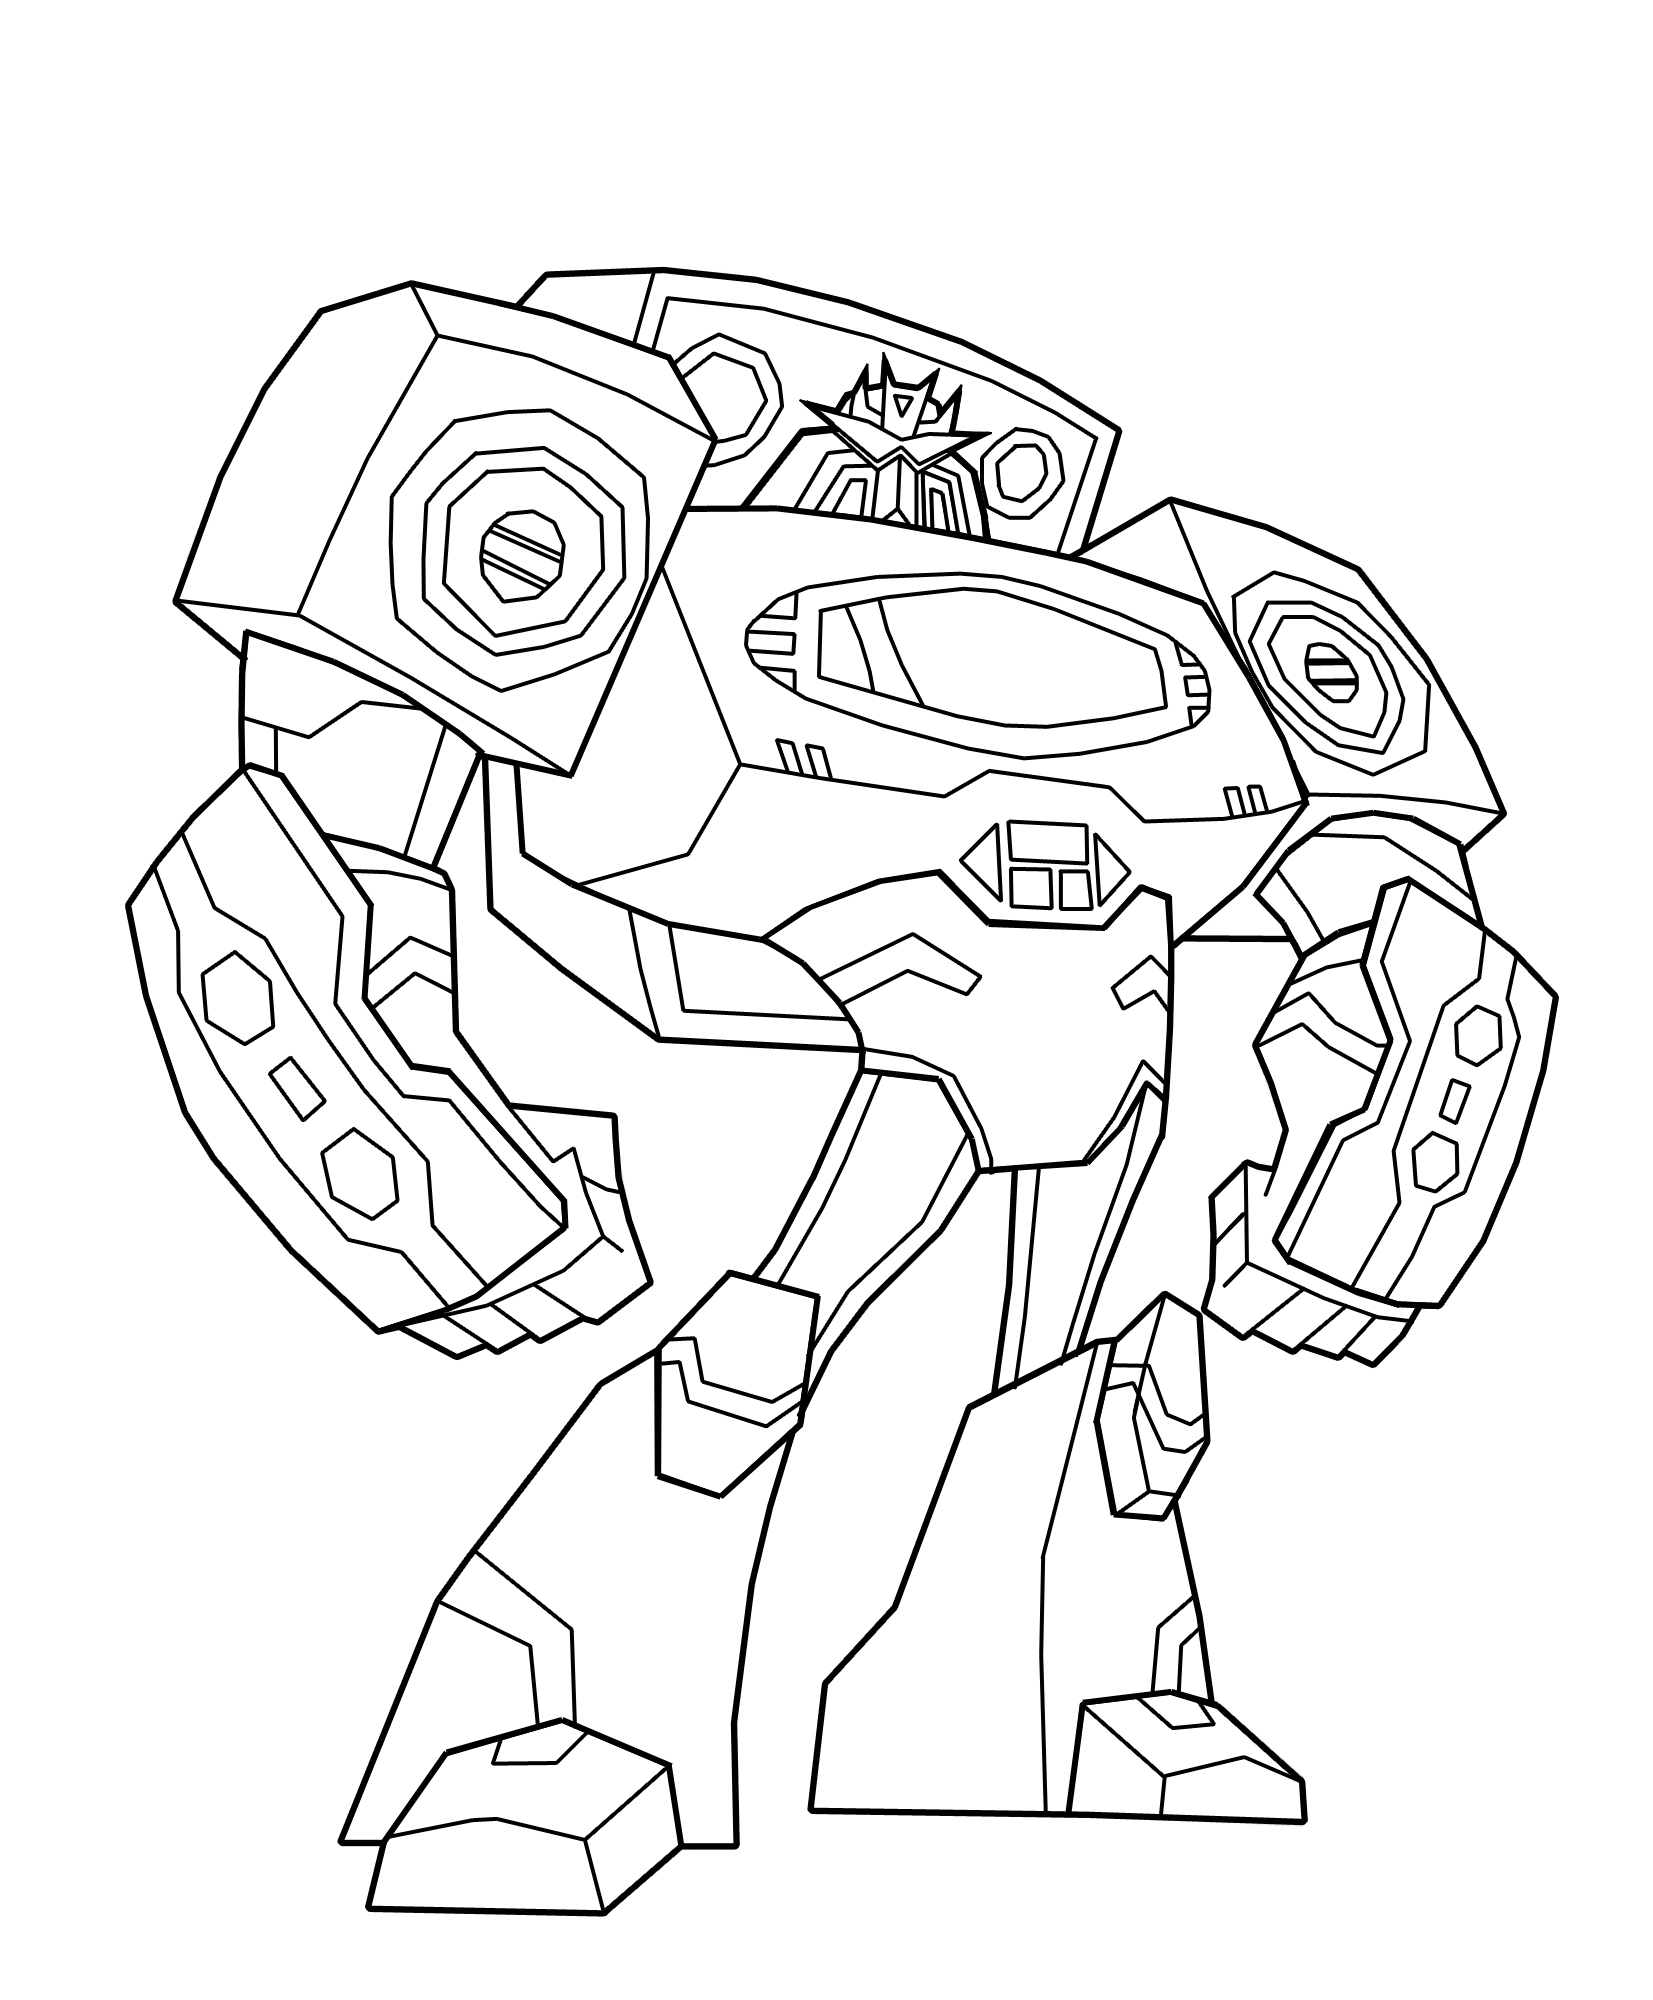 Angry Bird Transformers Coloring Pages At Getdrawings Com Free For